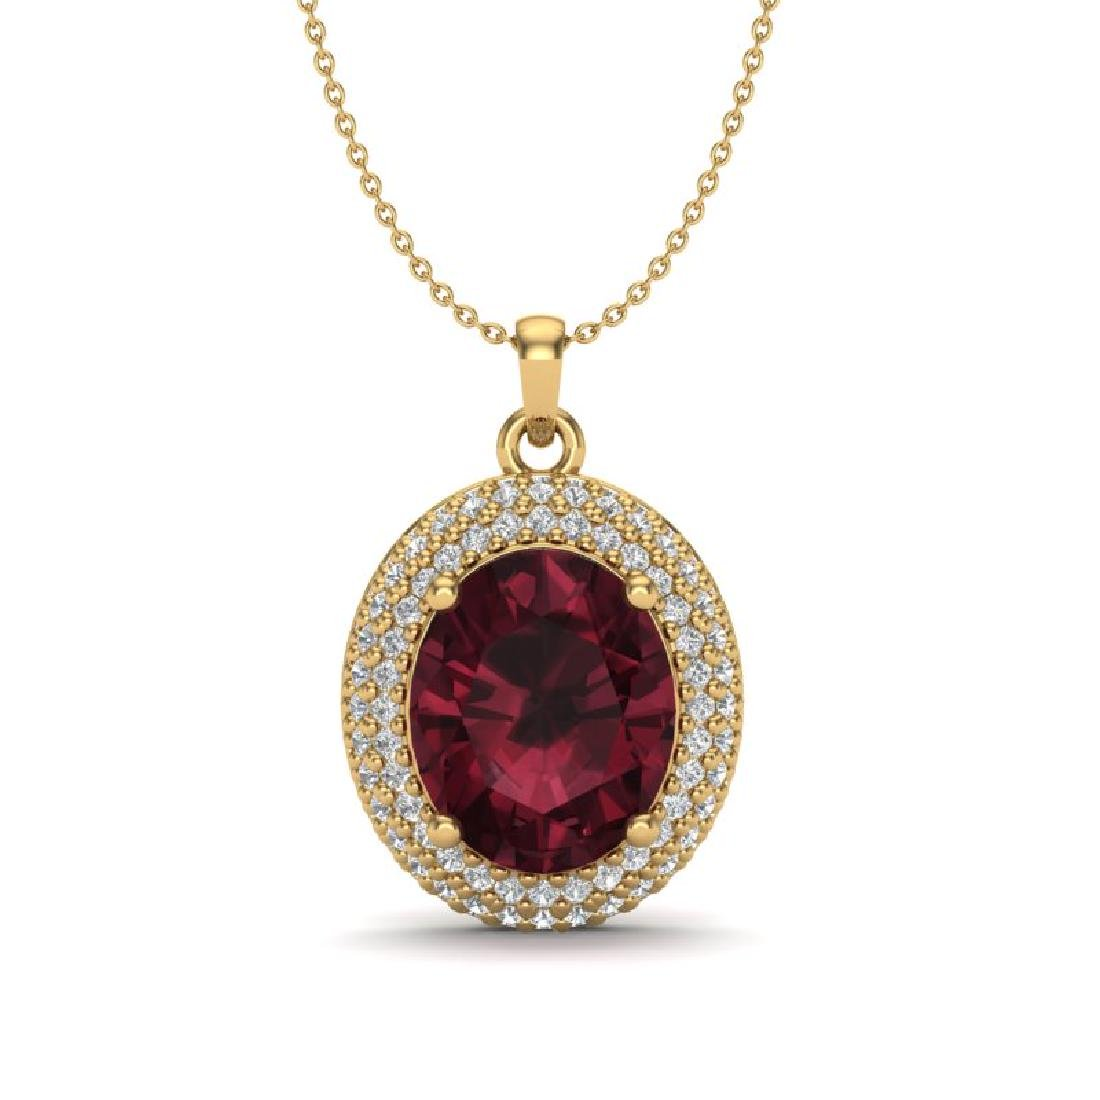 4.50 CTW Garnet & Micro Pave VS/SI Diamond Necklace 18K